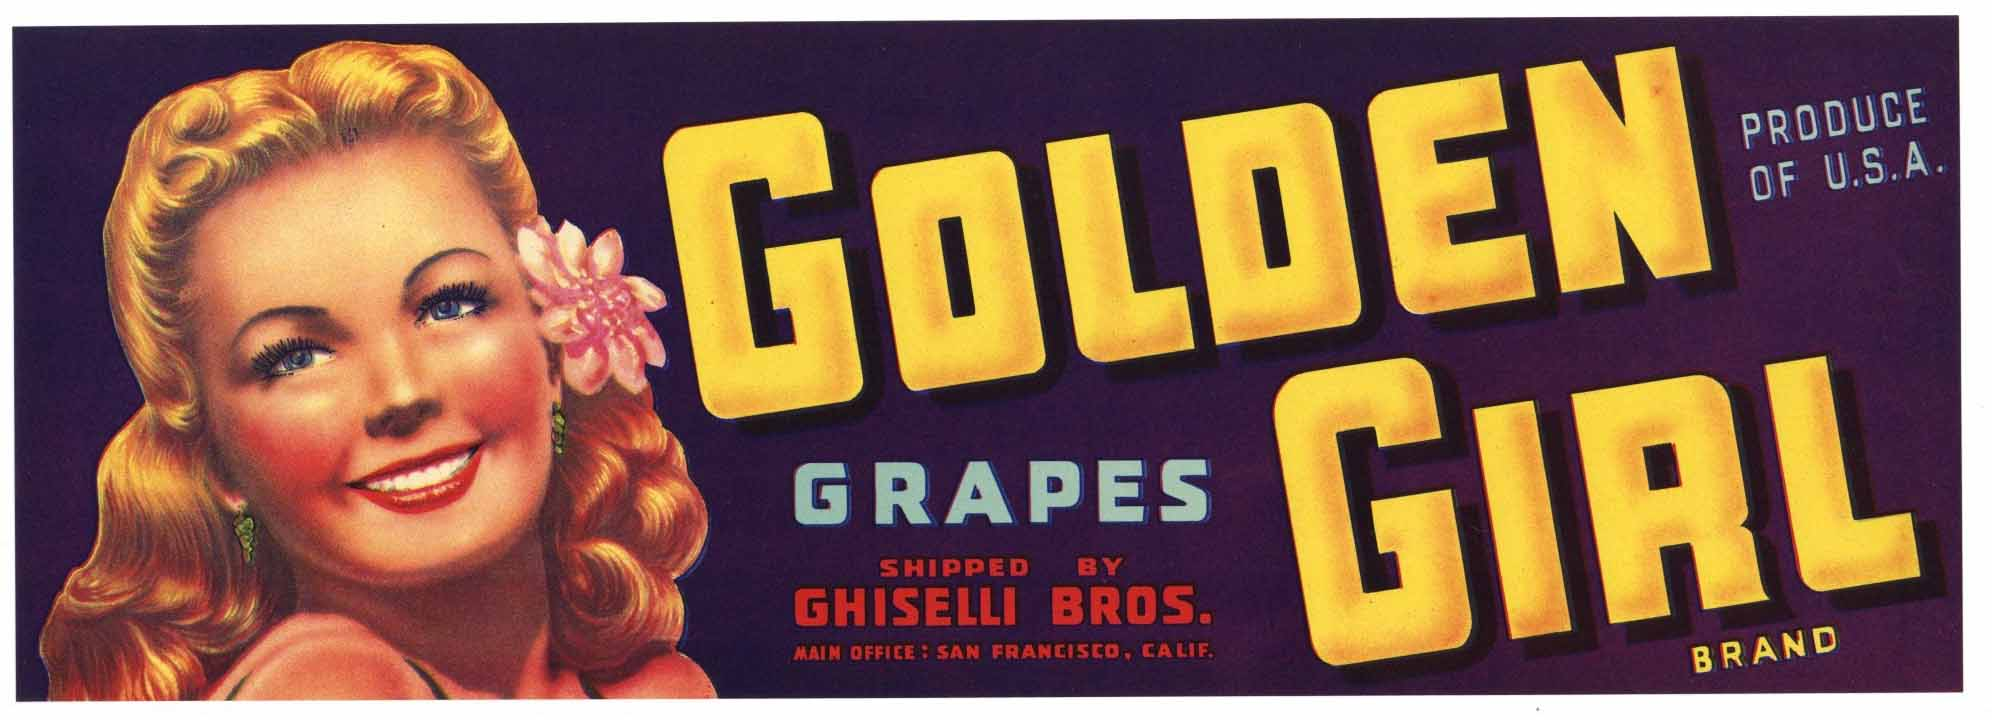 Golden Girl Brand Vintage Grape Crate Label